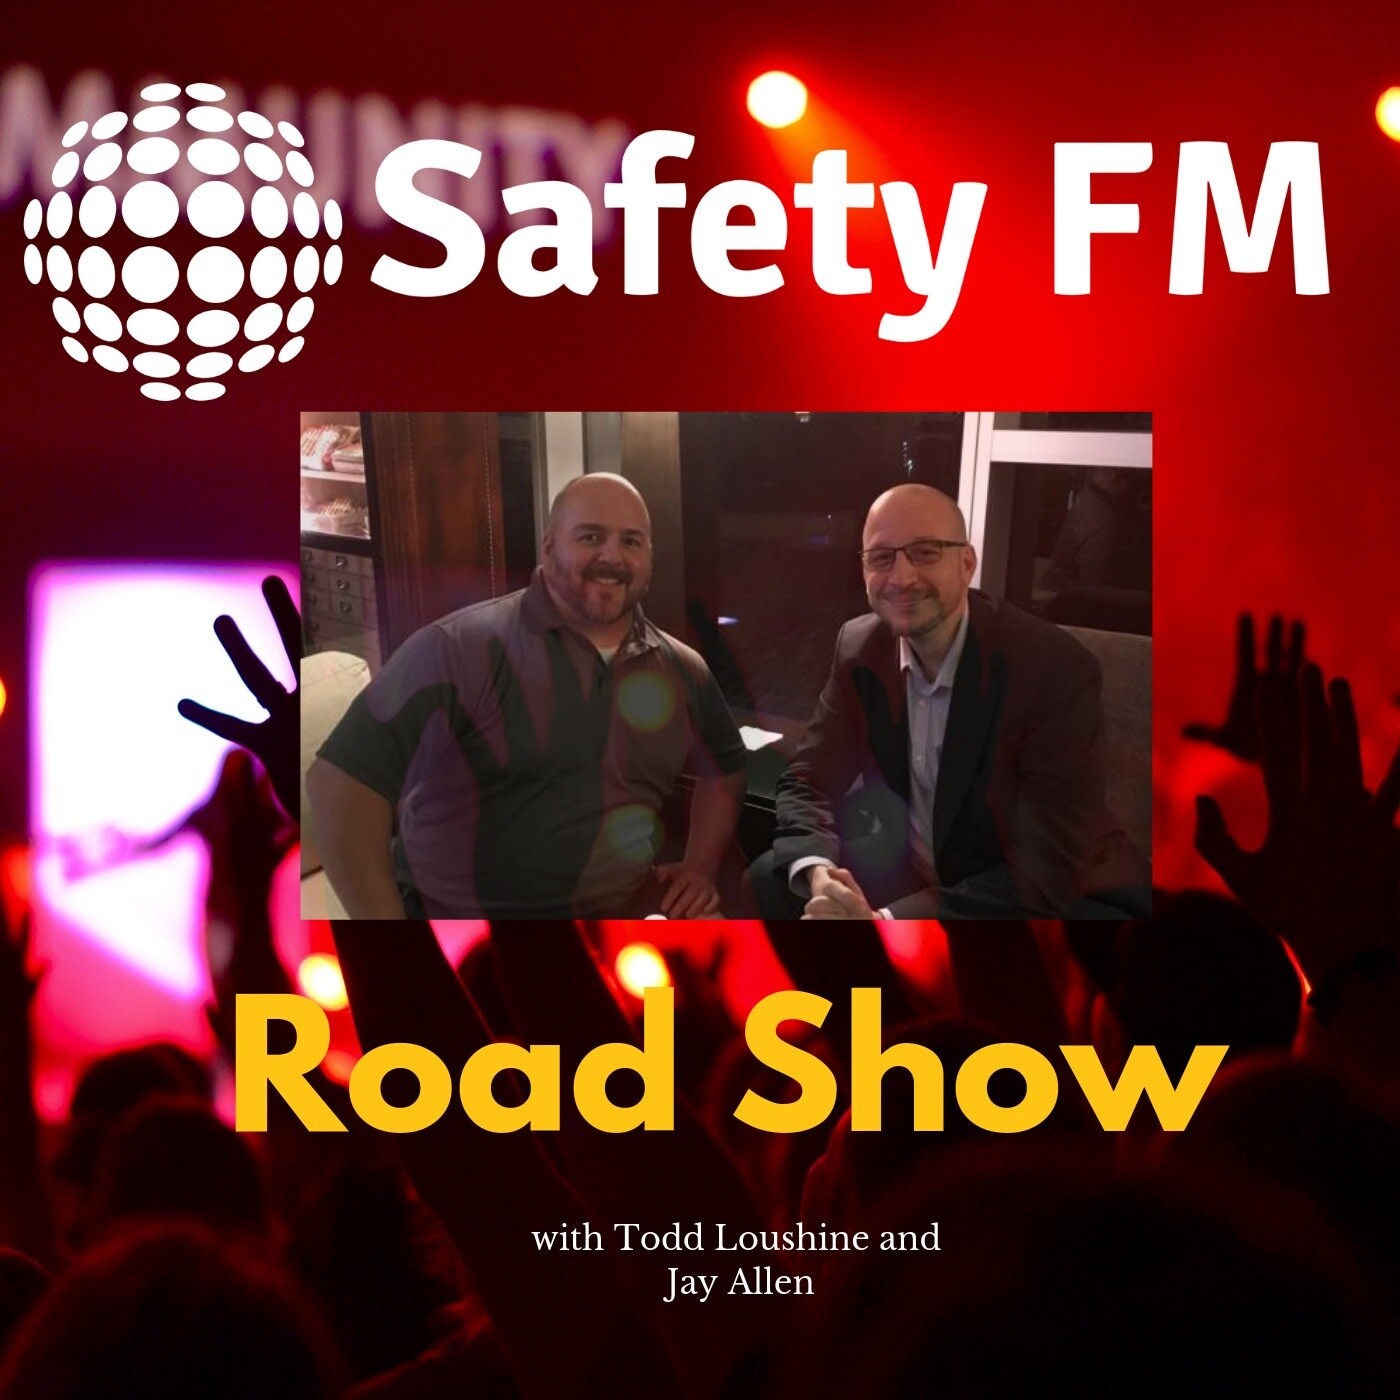 The Jay Allen Show on Safety FM